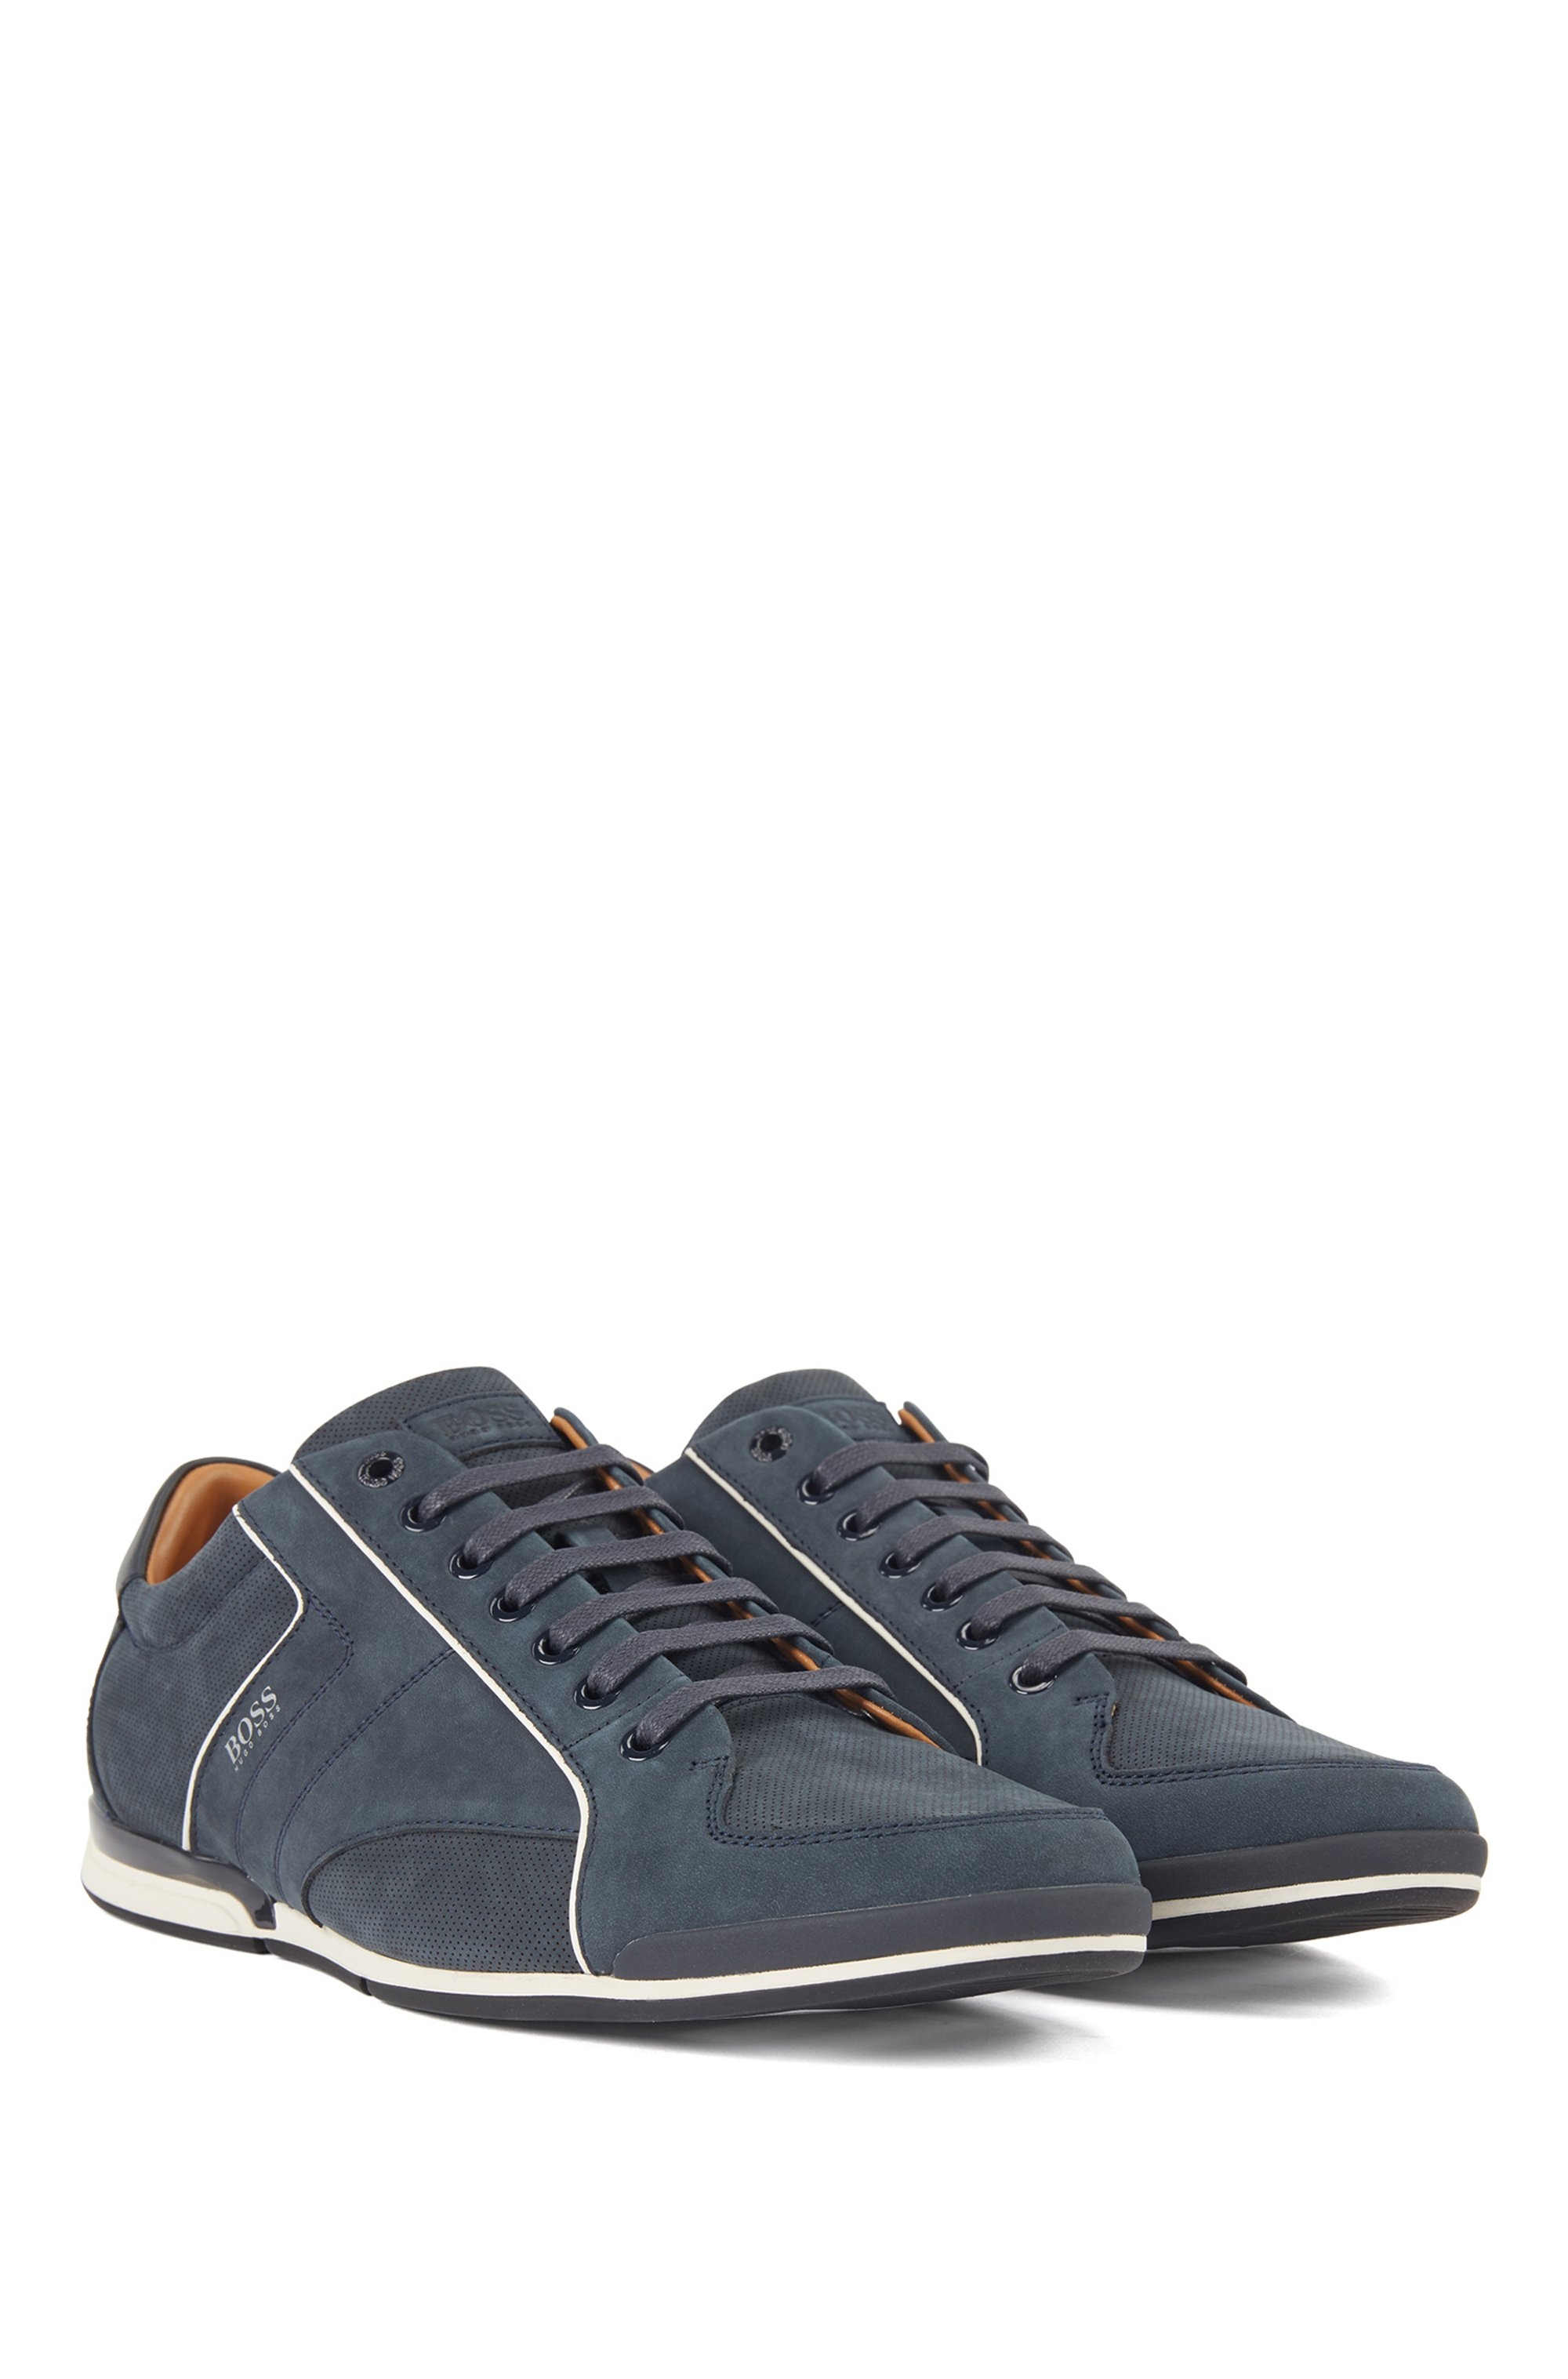 Low-top trainers in mixed leather with perforated panels